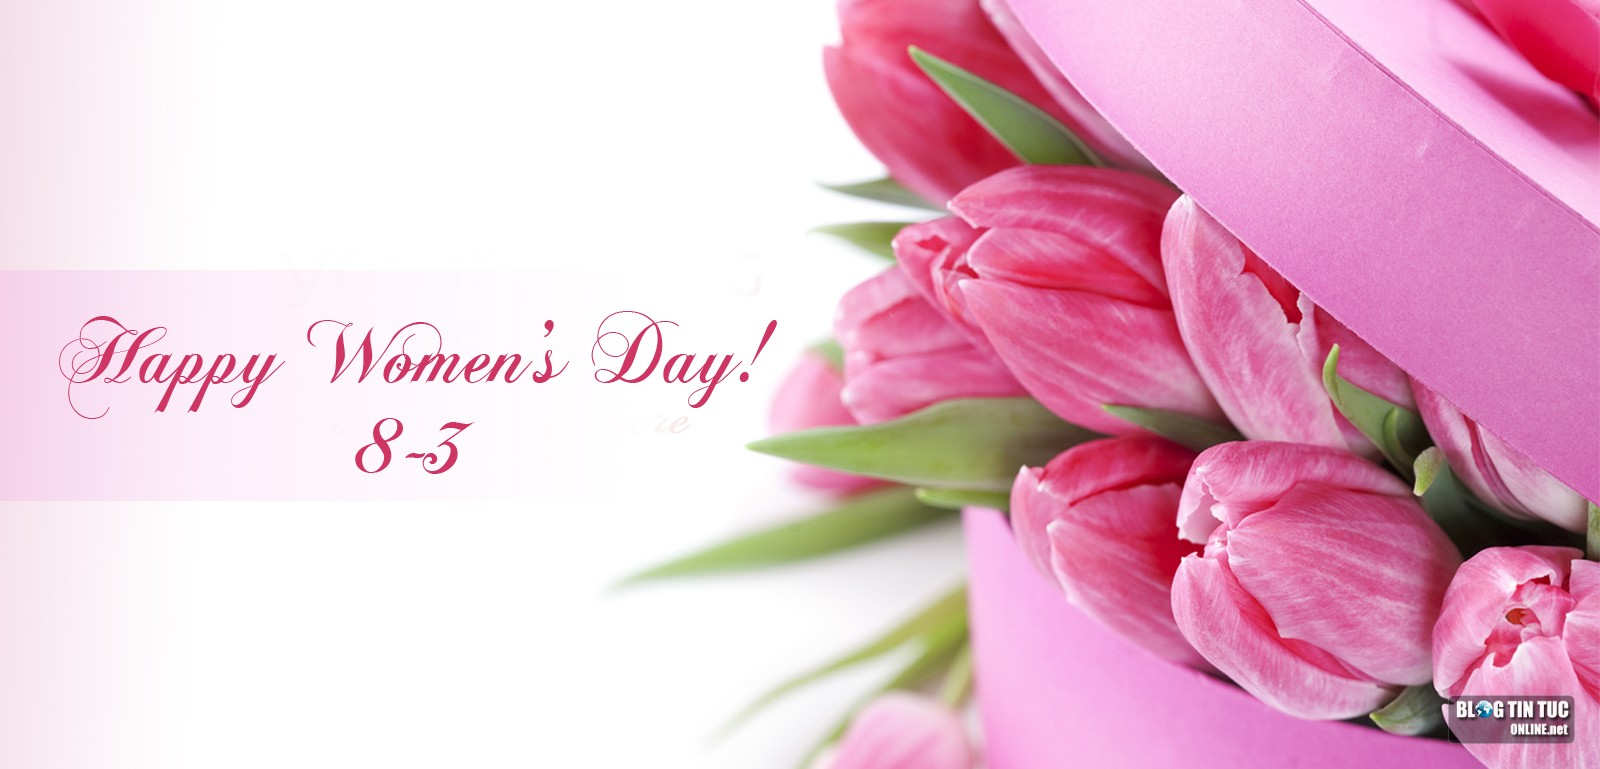 Hapy-International-Womens-Day-backgrounds-15